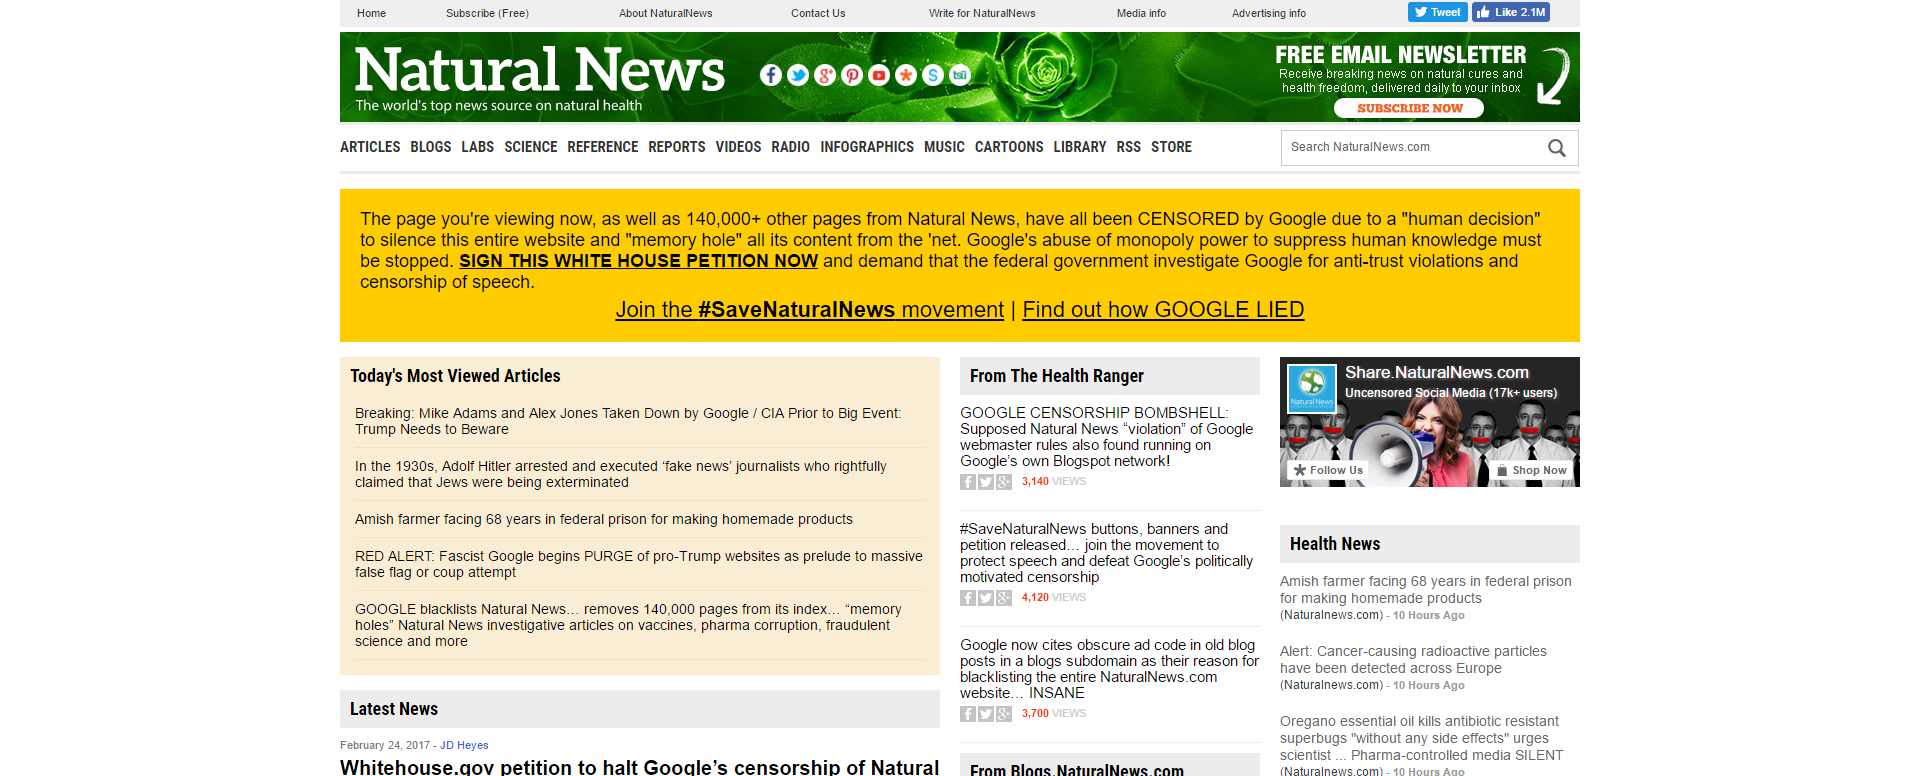 screencapture-naturalnews-1488007495270.png